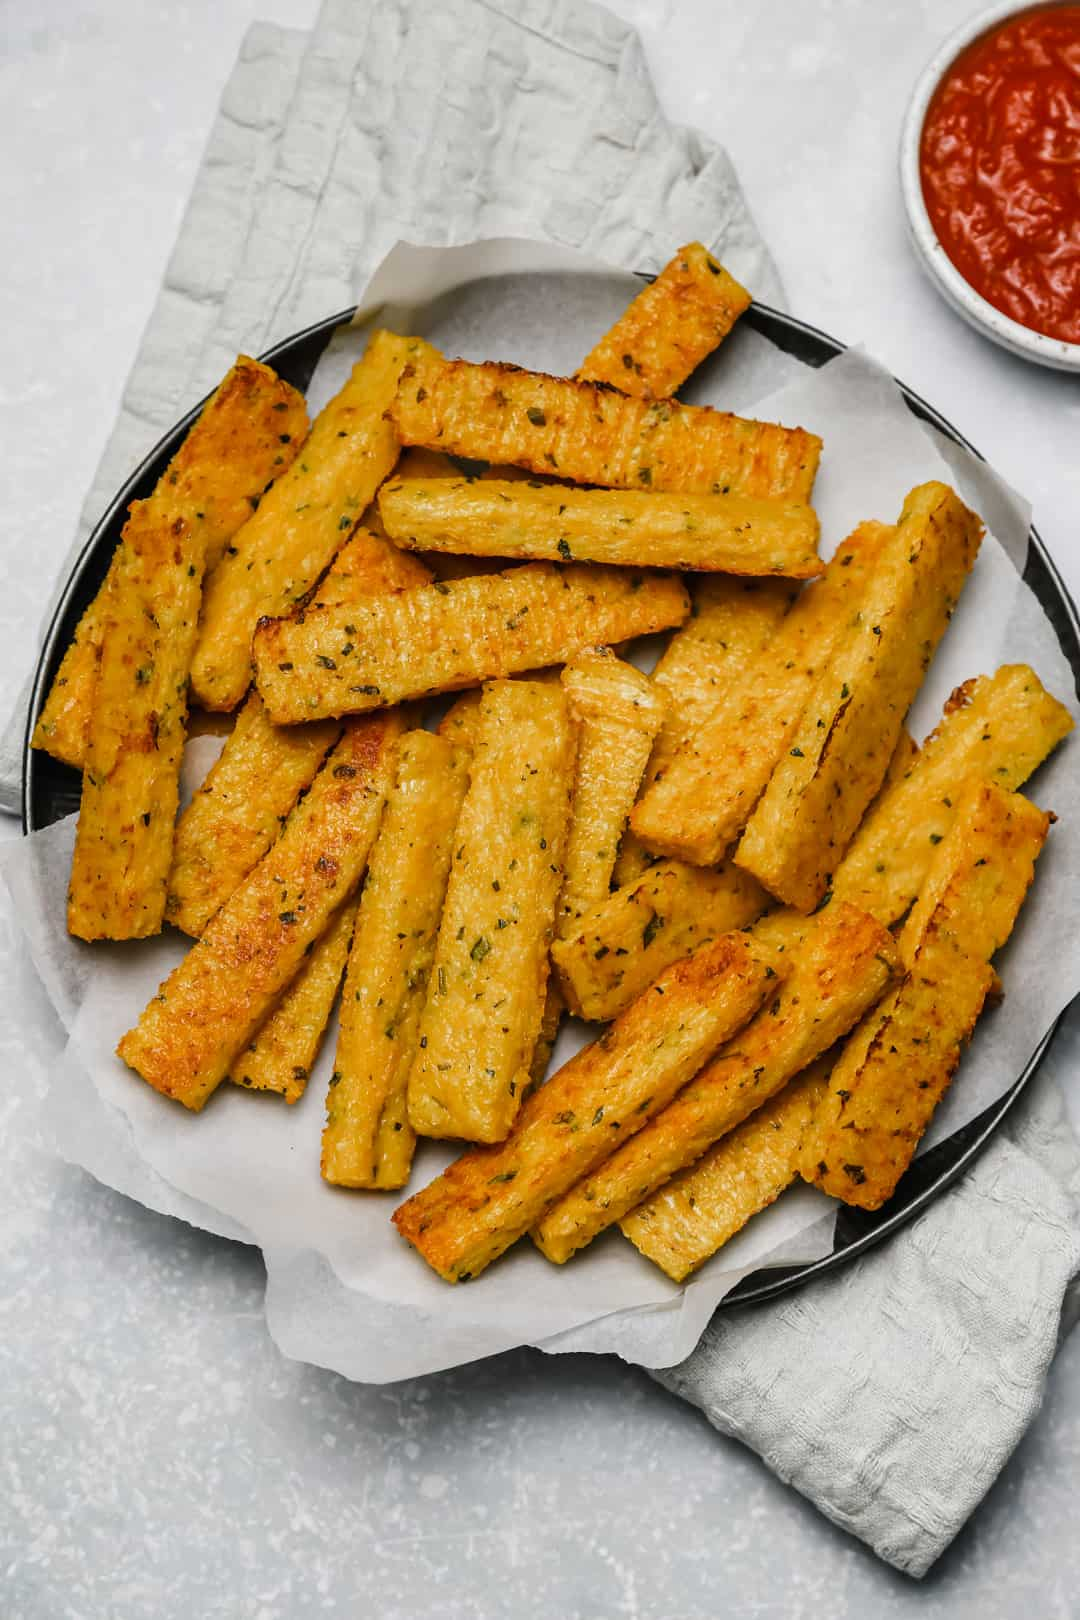 Baked polenta fries with marinara sauce